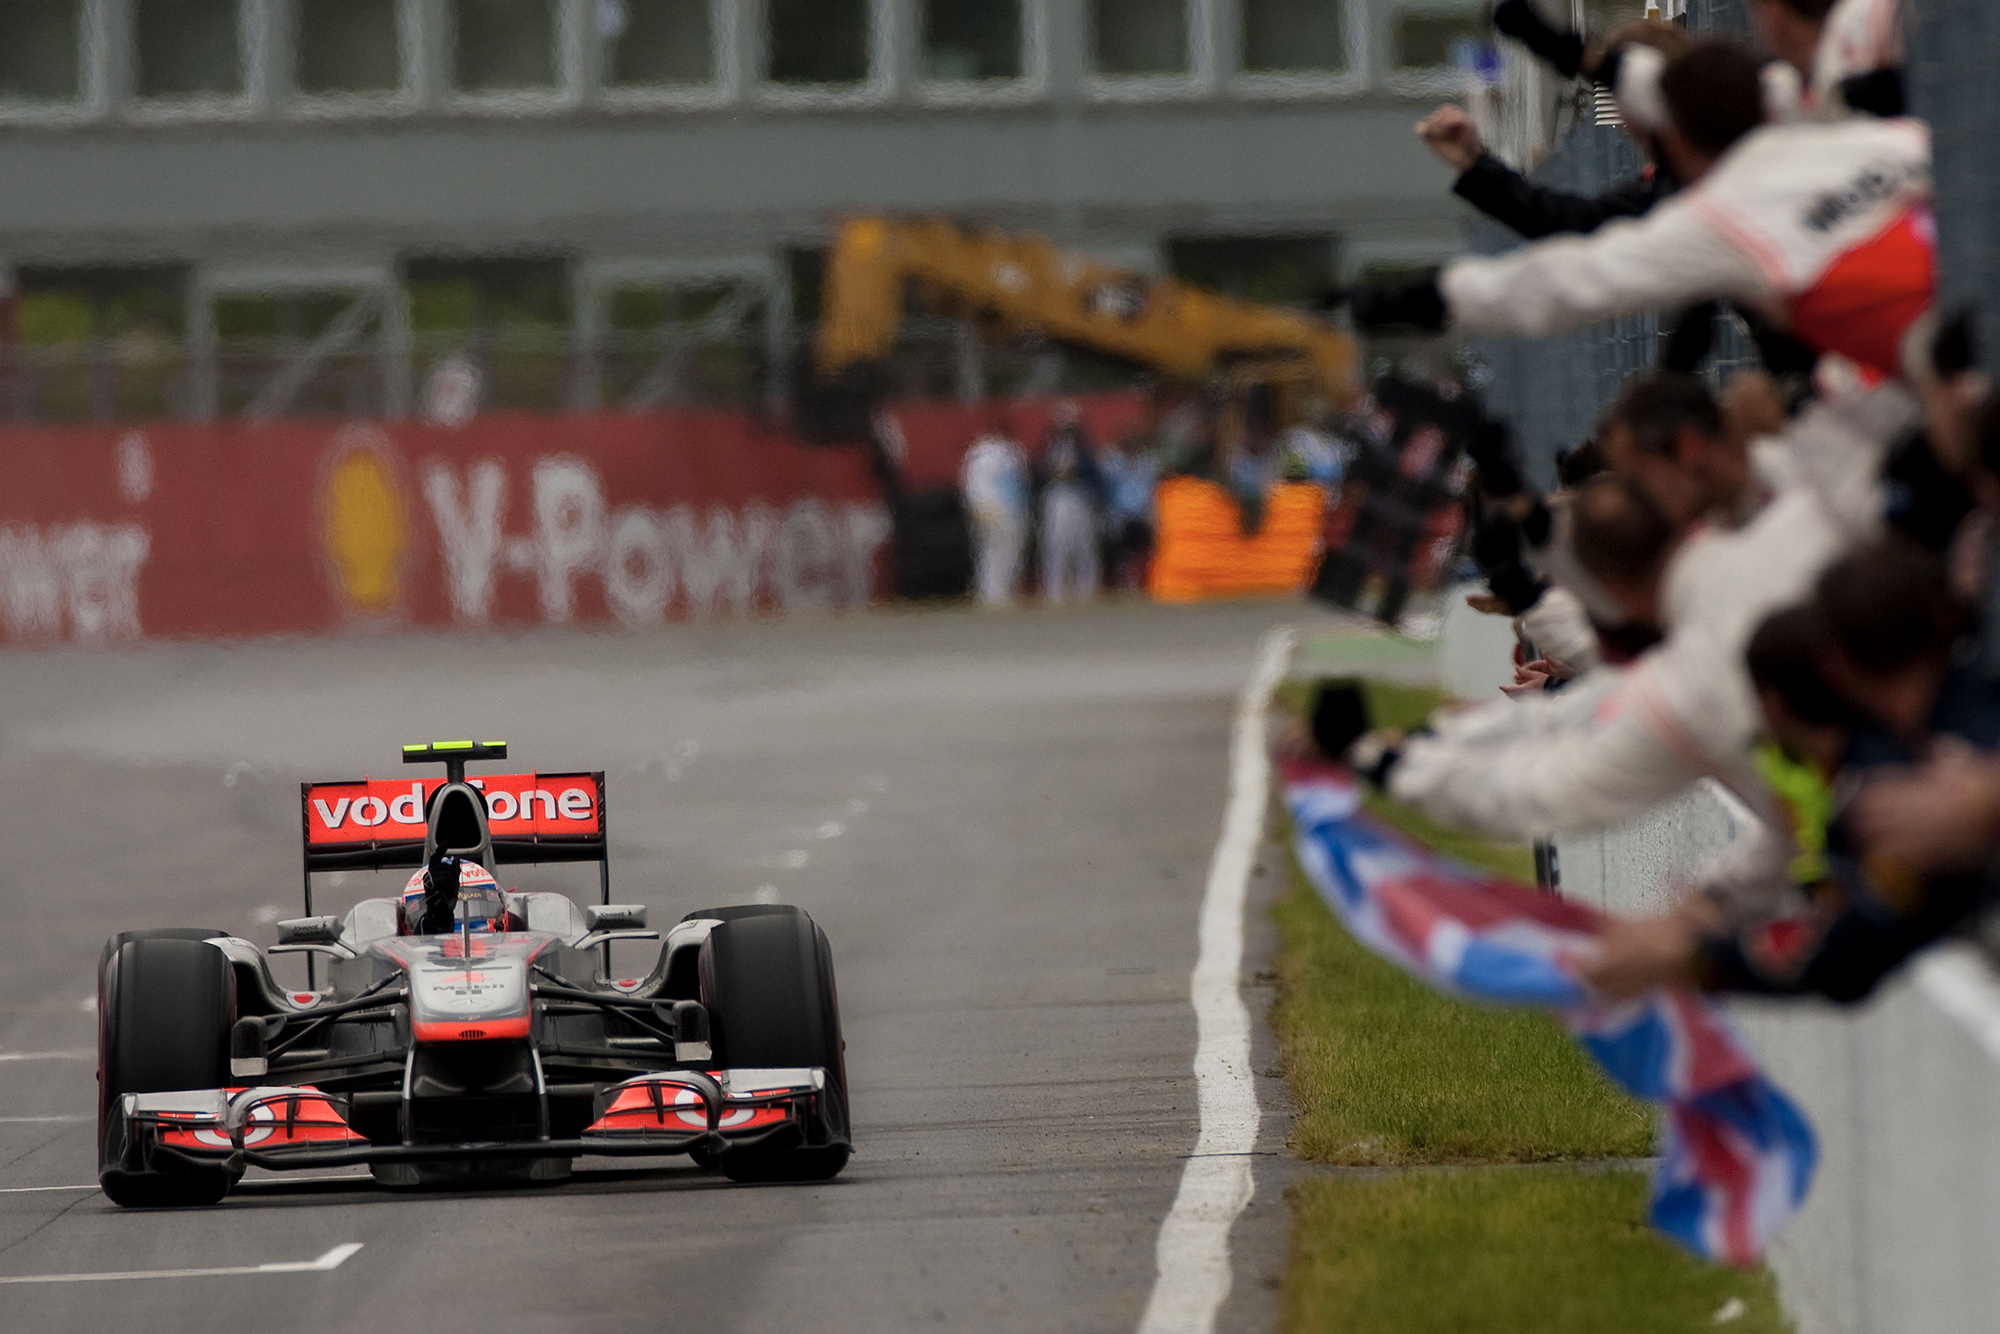 Jenson Button raises his hand in victory after winning the 2011 canadian grand prix